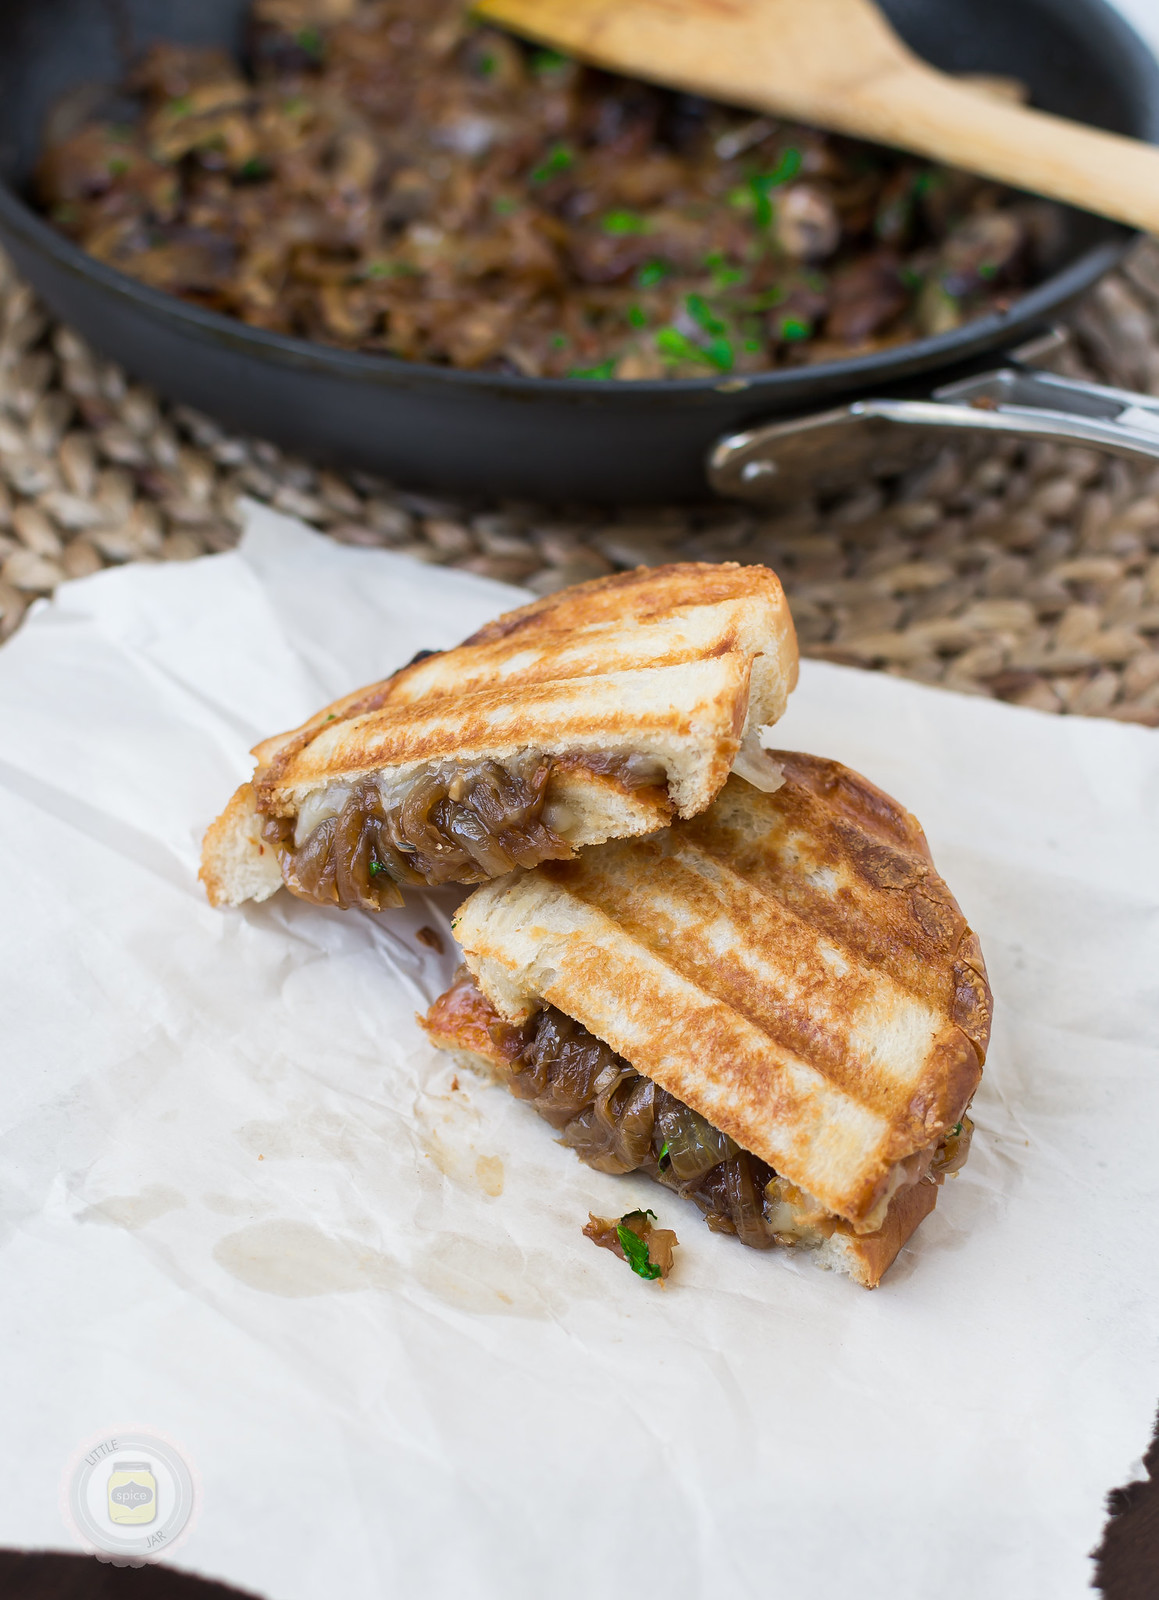 Caramelized Onion and Baby Bella Panini Melt Final 8